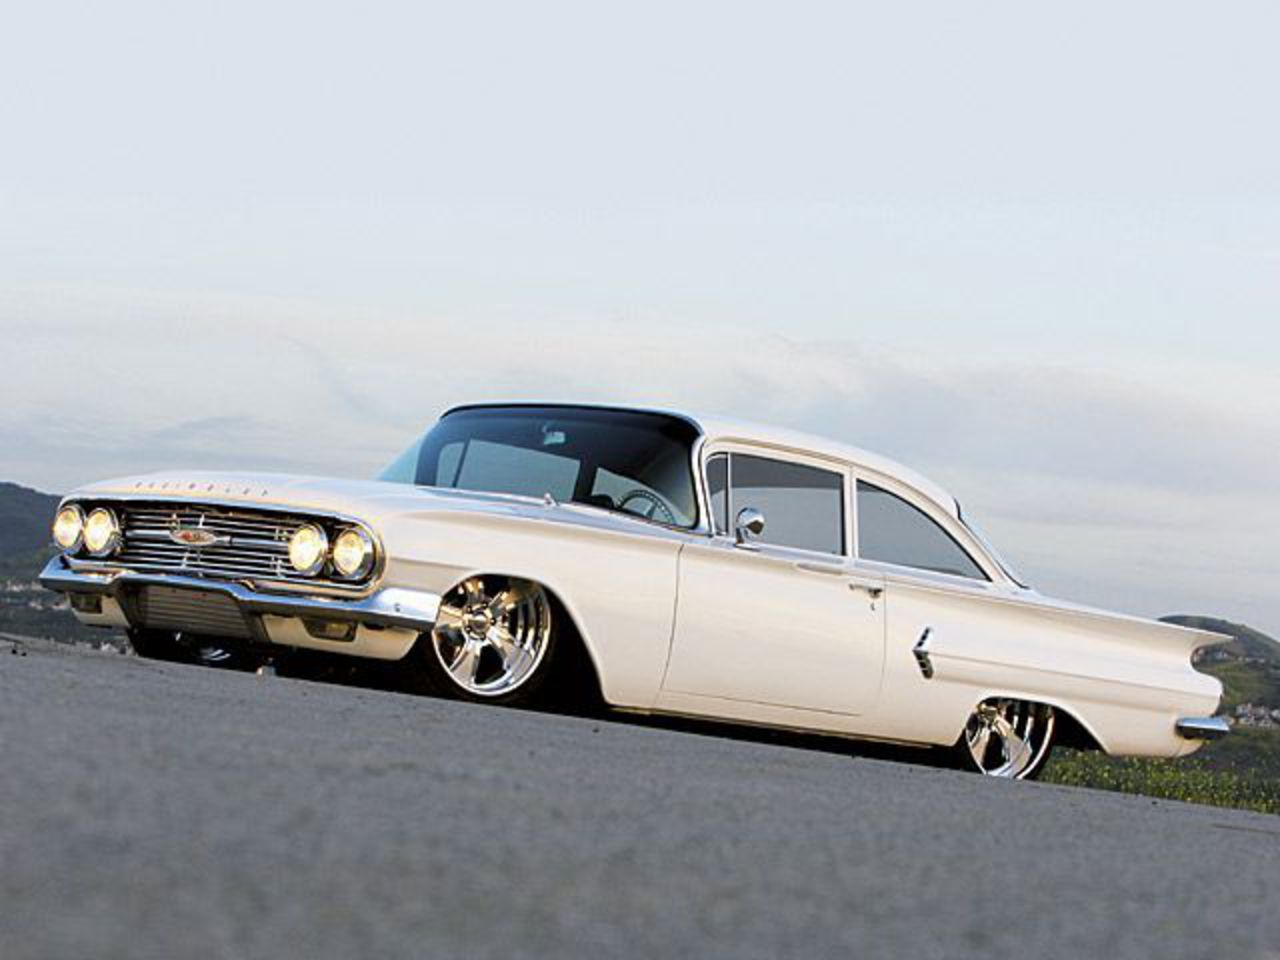 Technically changed little in those two years 1958-1972 Chevrolet Biscayne.